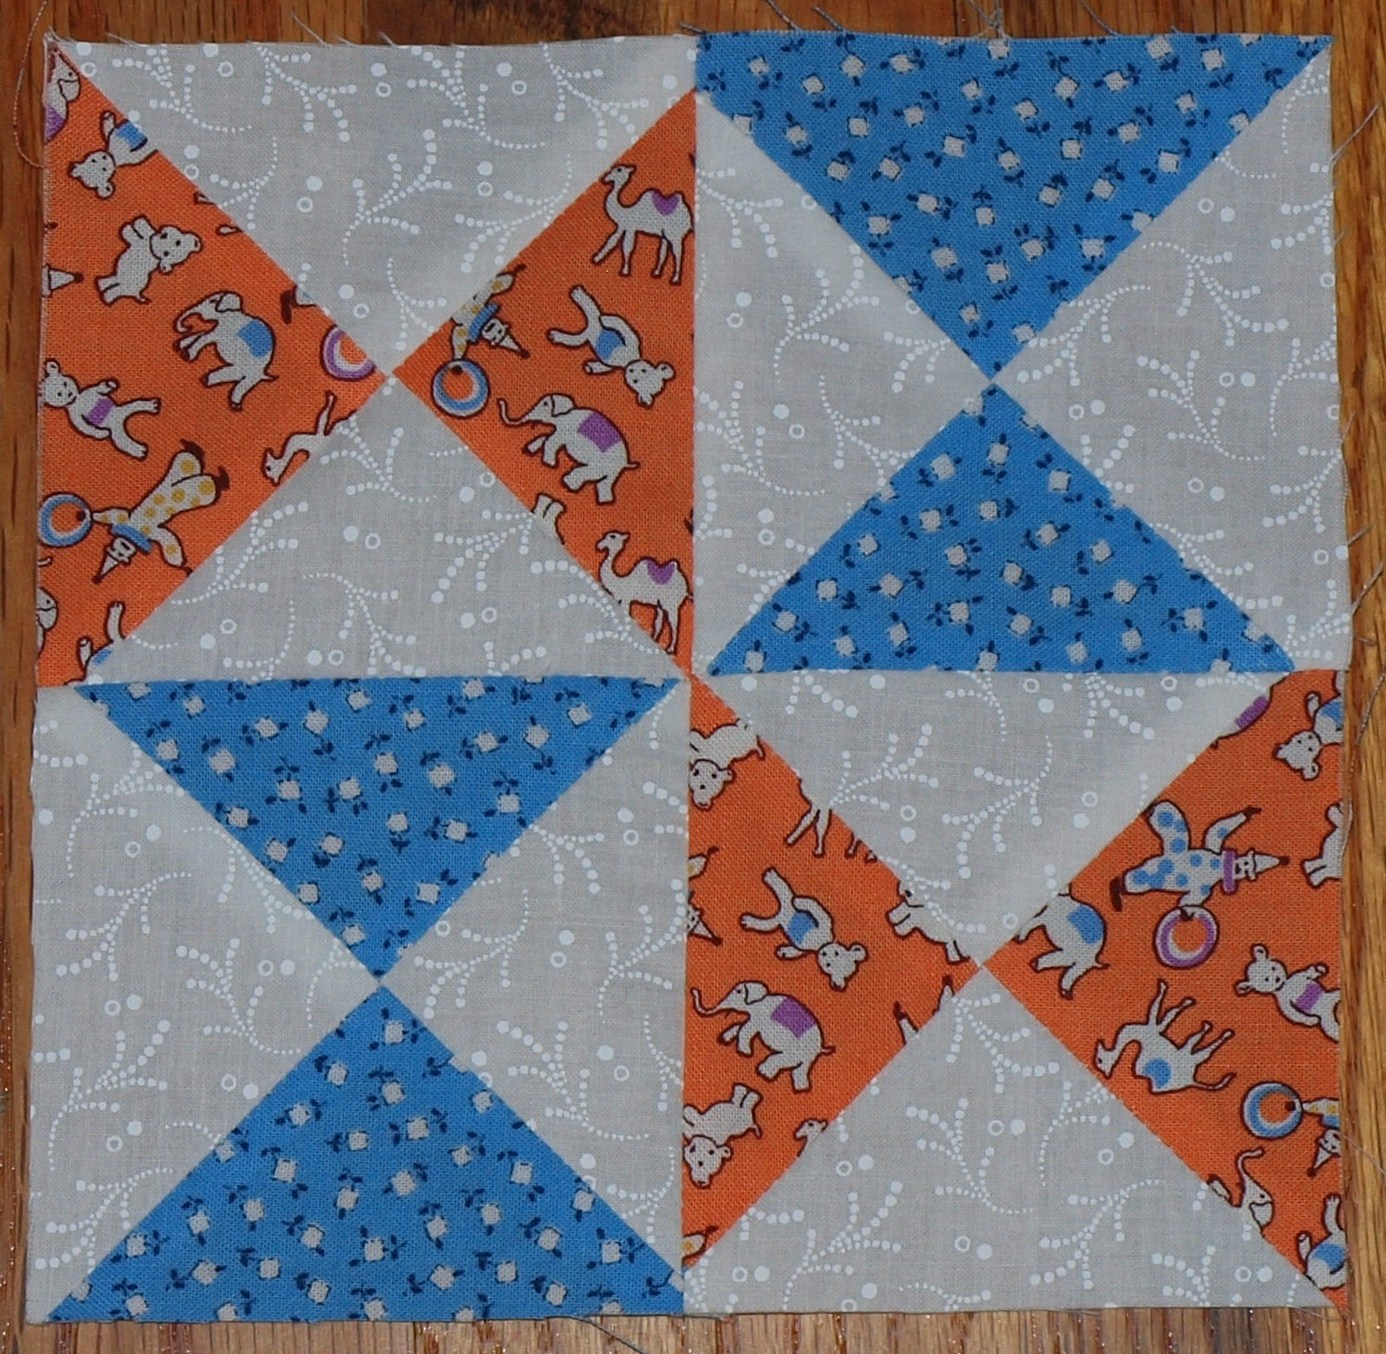 Meadowbrook : Bow Tie And 9-Patch Quilt Along